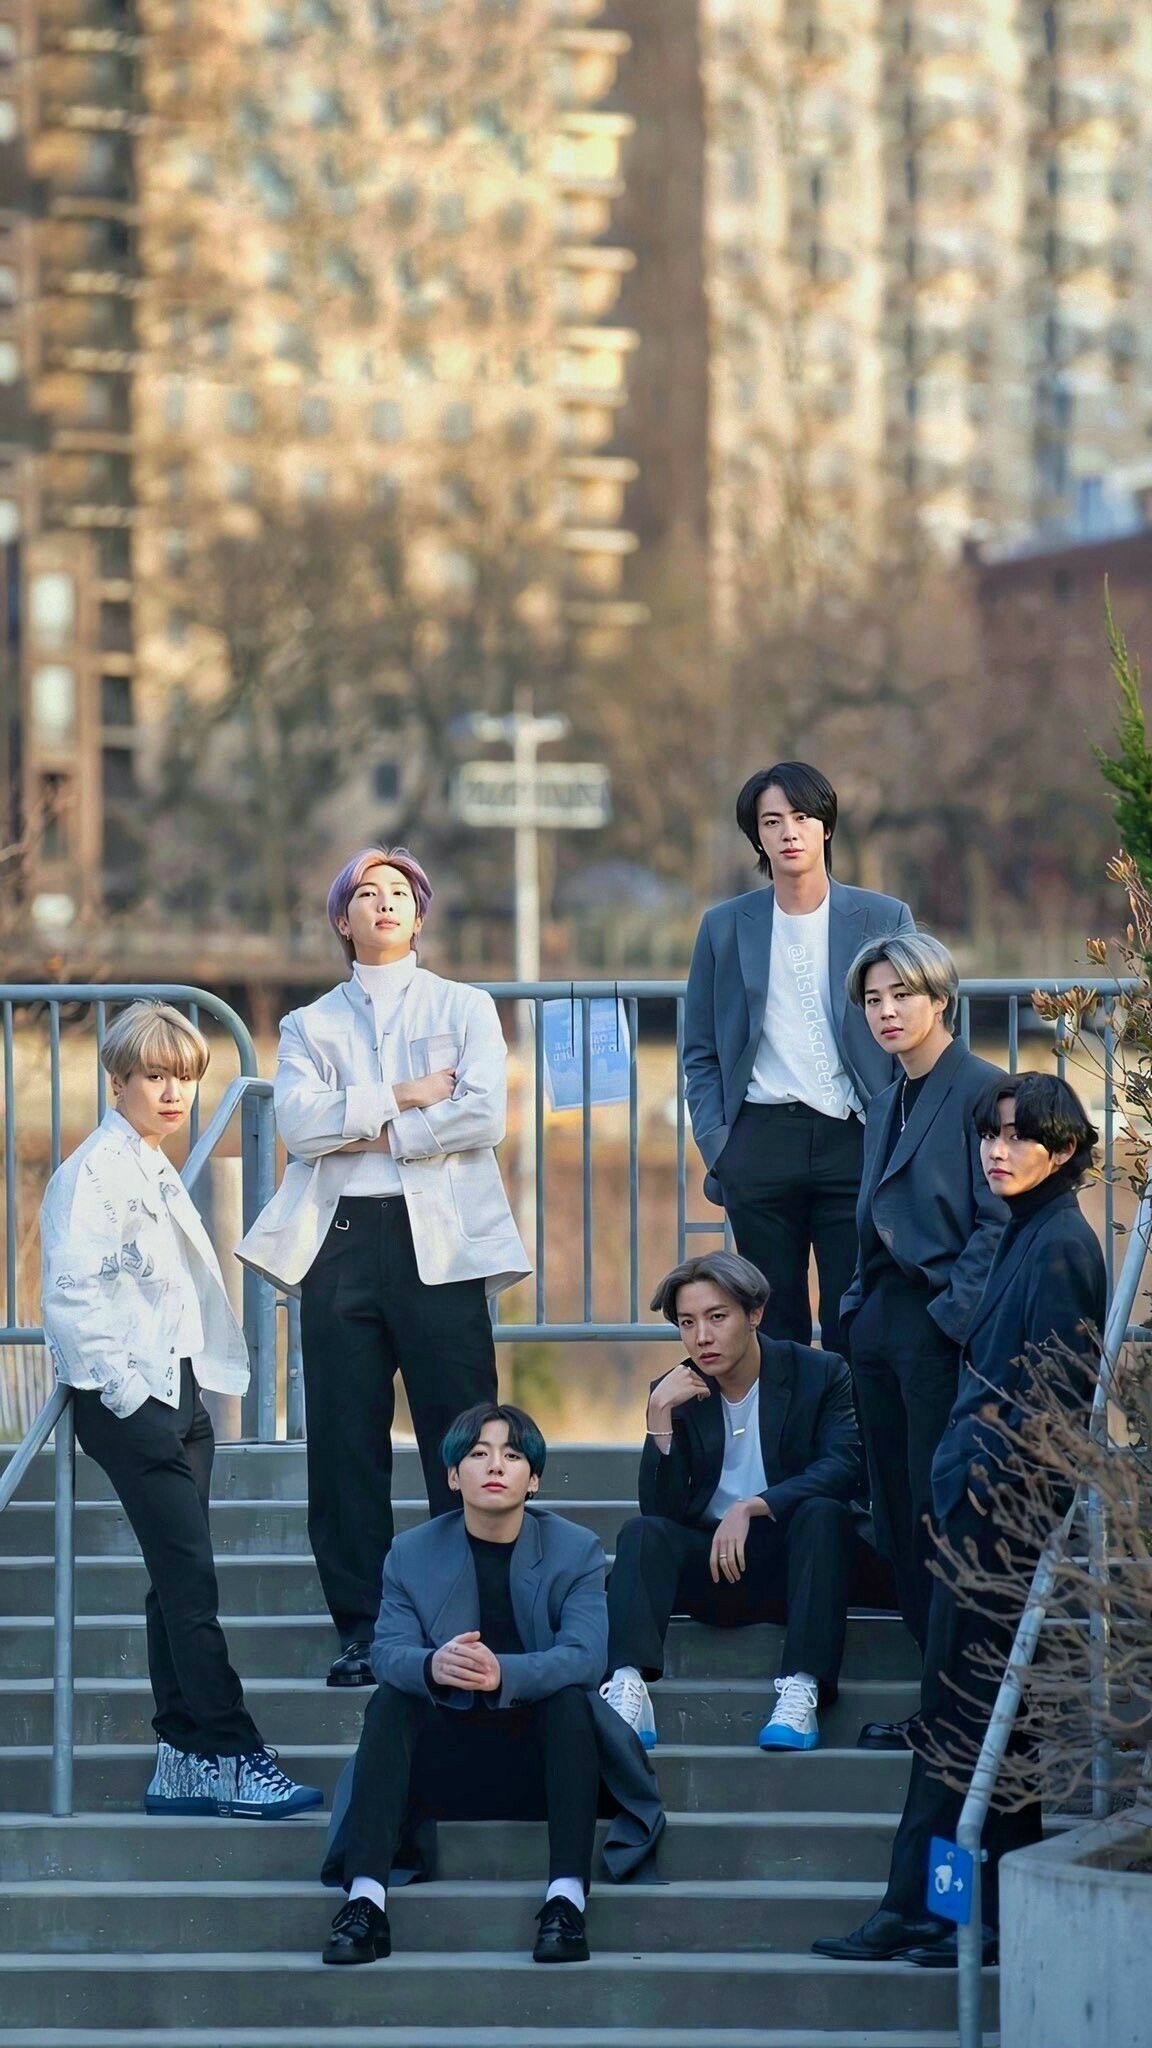 Bts Group Wallpapers Free Download Foto Bts Bts Group Bts Group Picture Bts group wallpaper download